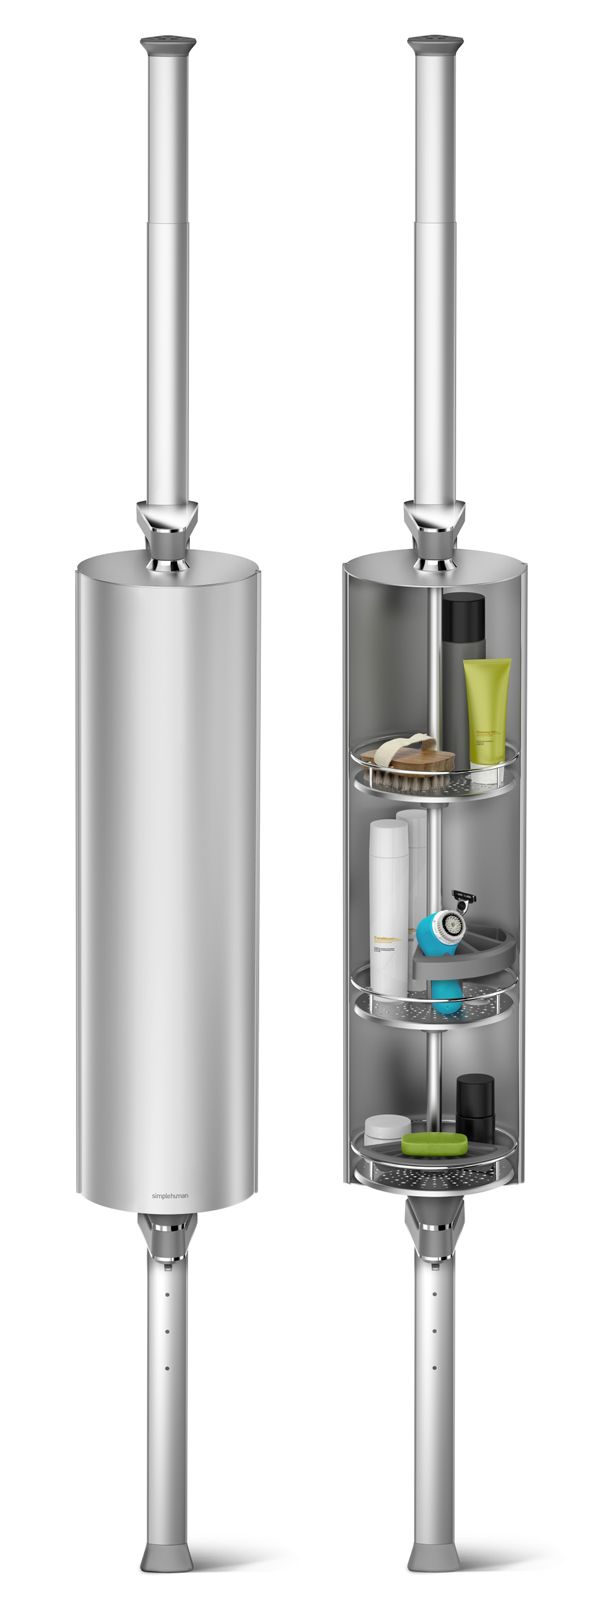 introducing the allnew aluminum spin cabinet u2014 an elegant and modern shower upgrade